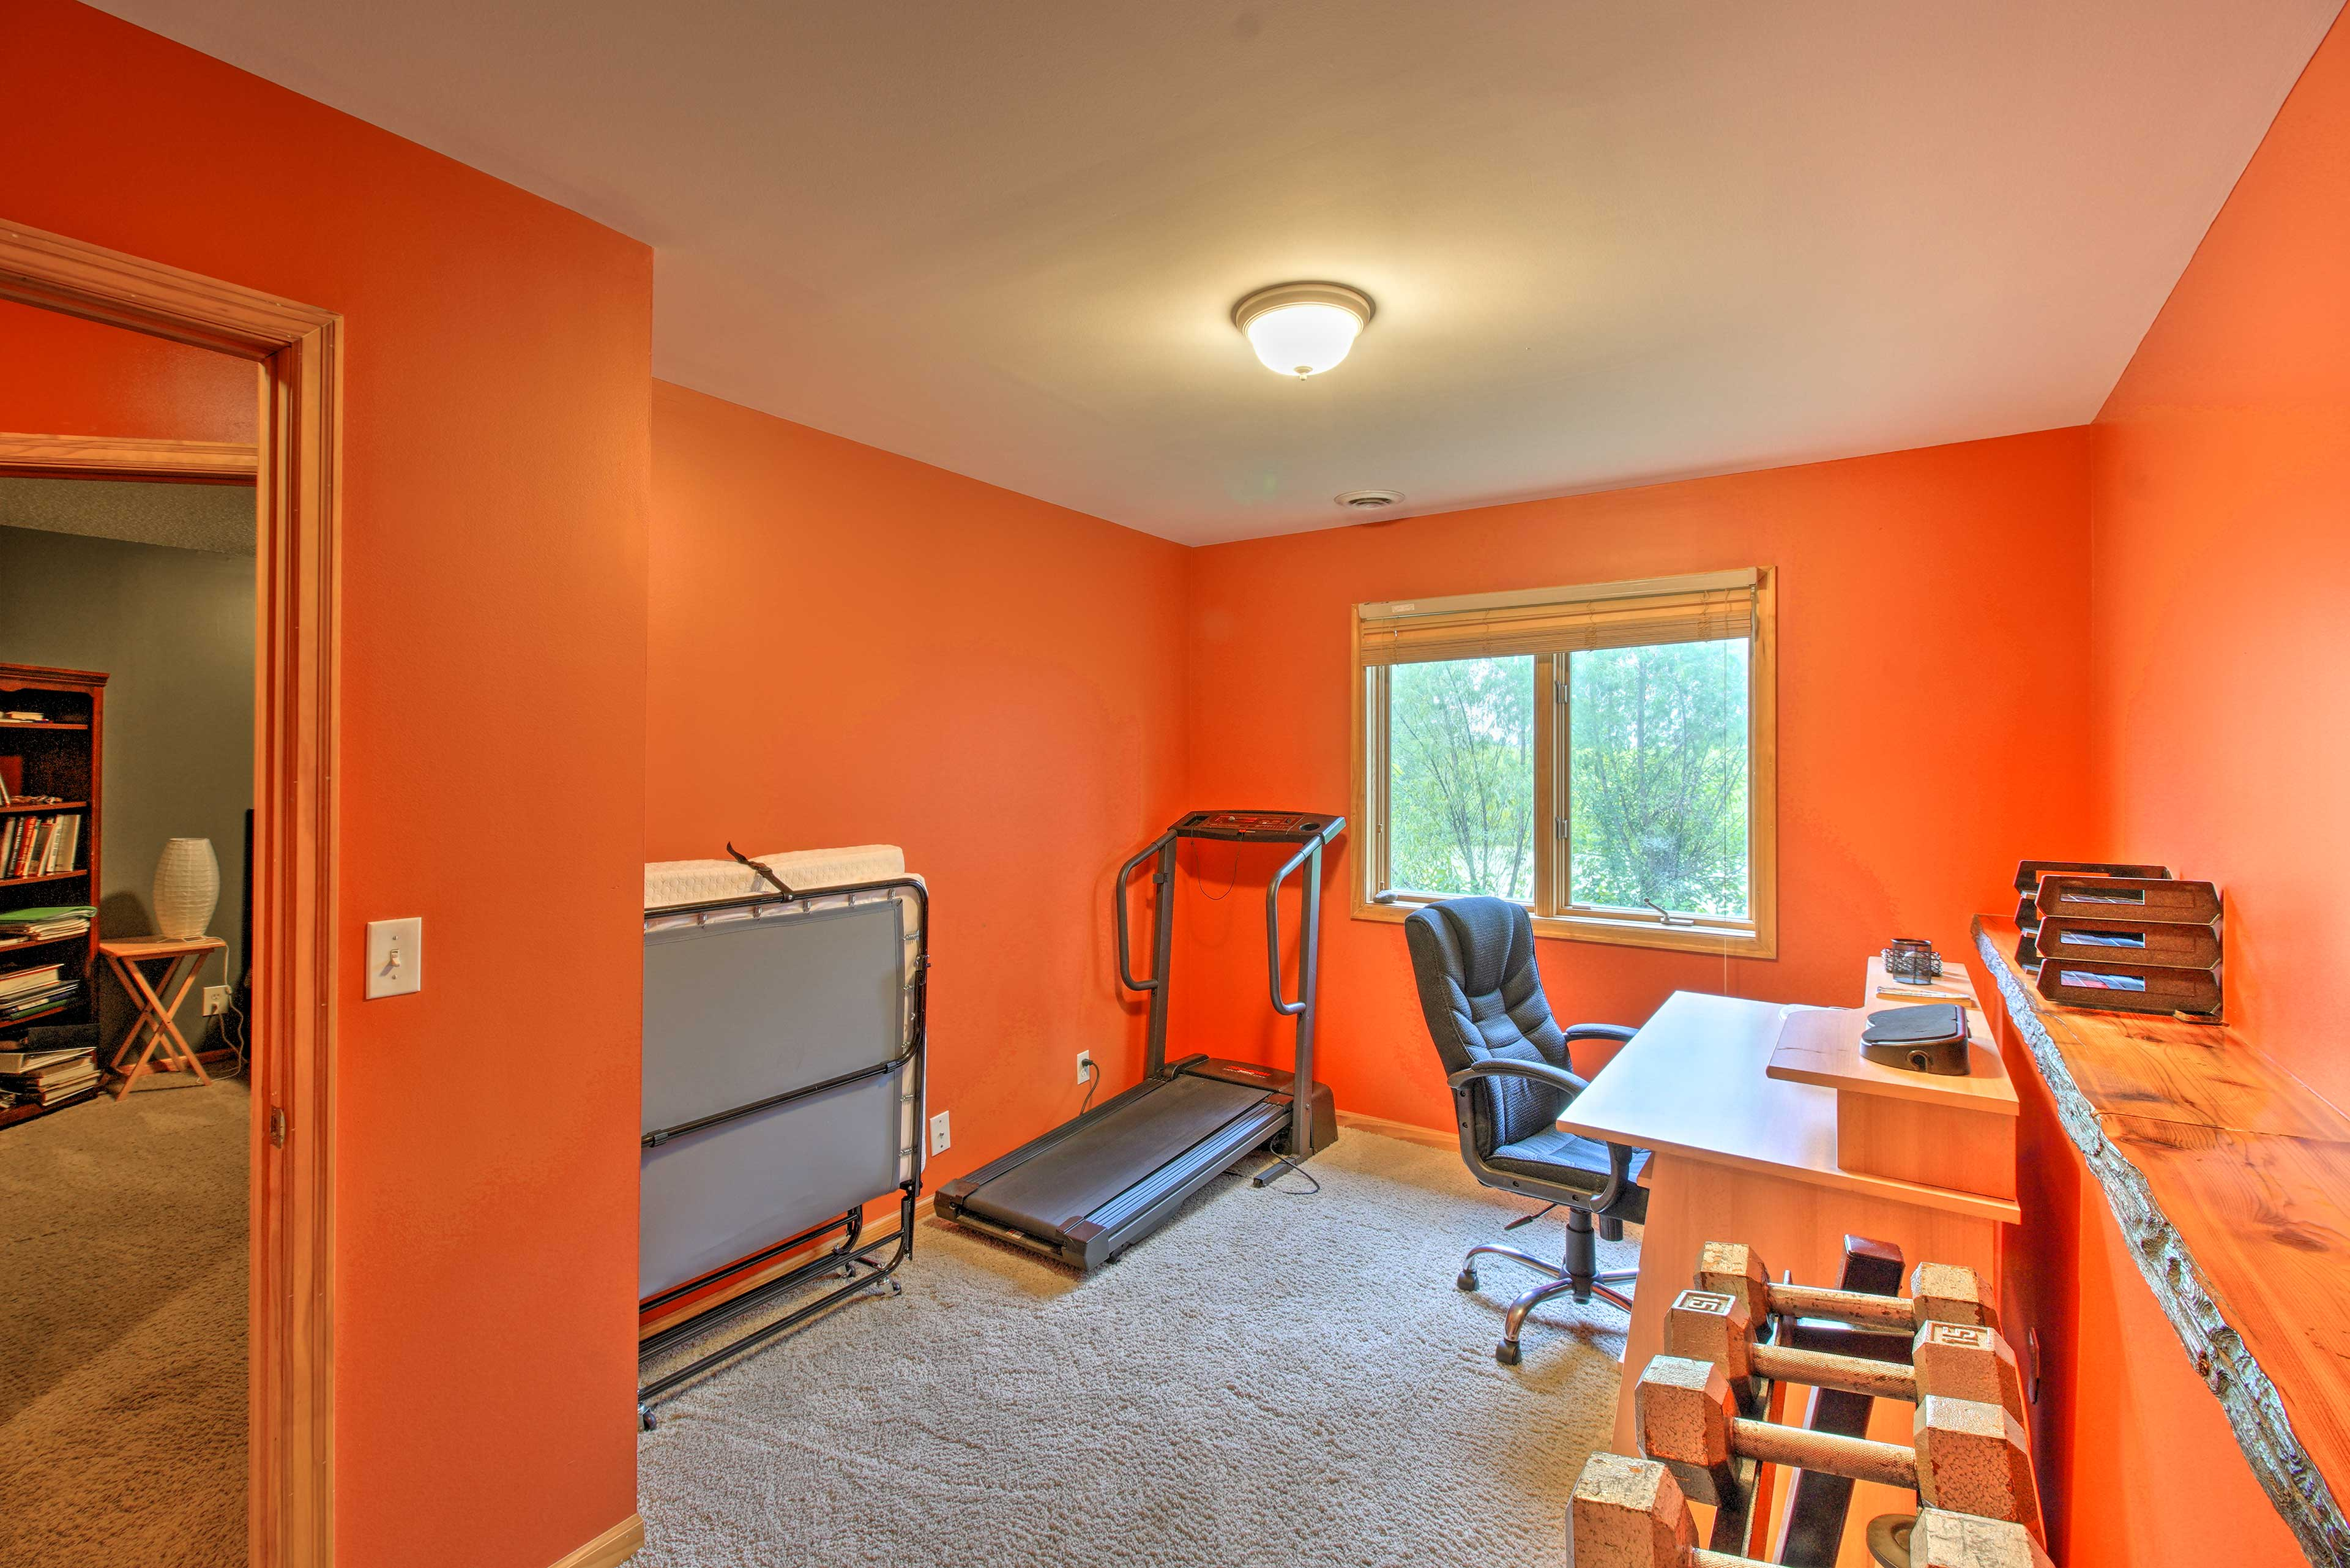 The office space also has hand weights for a quick workout.